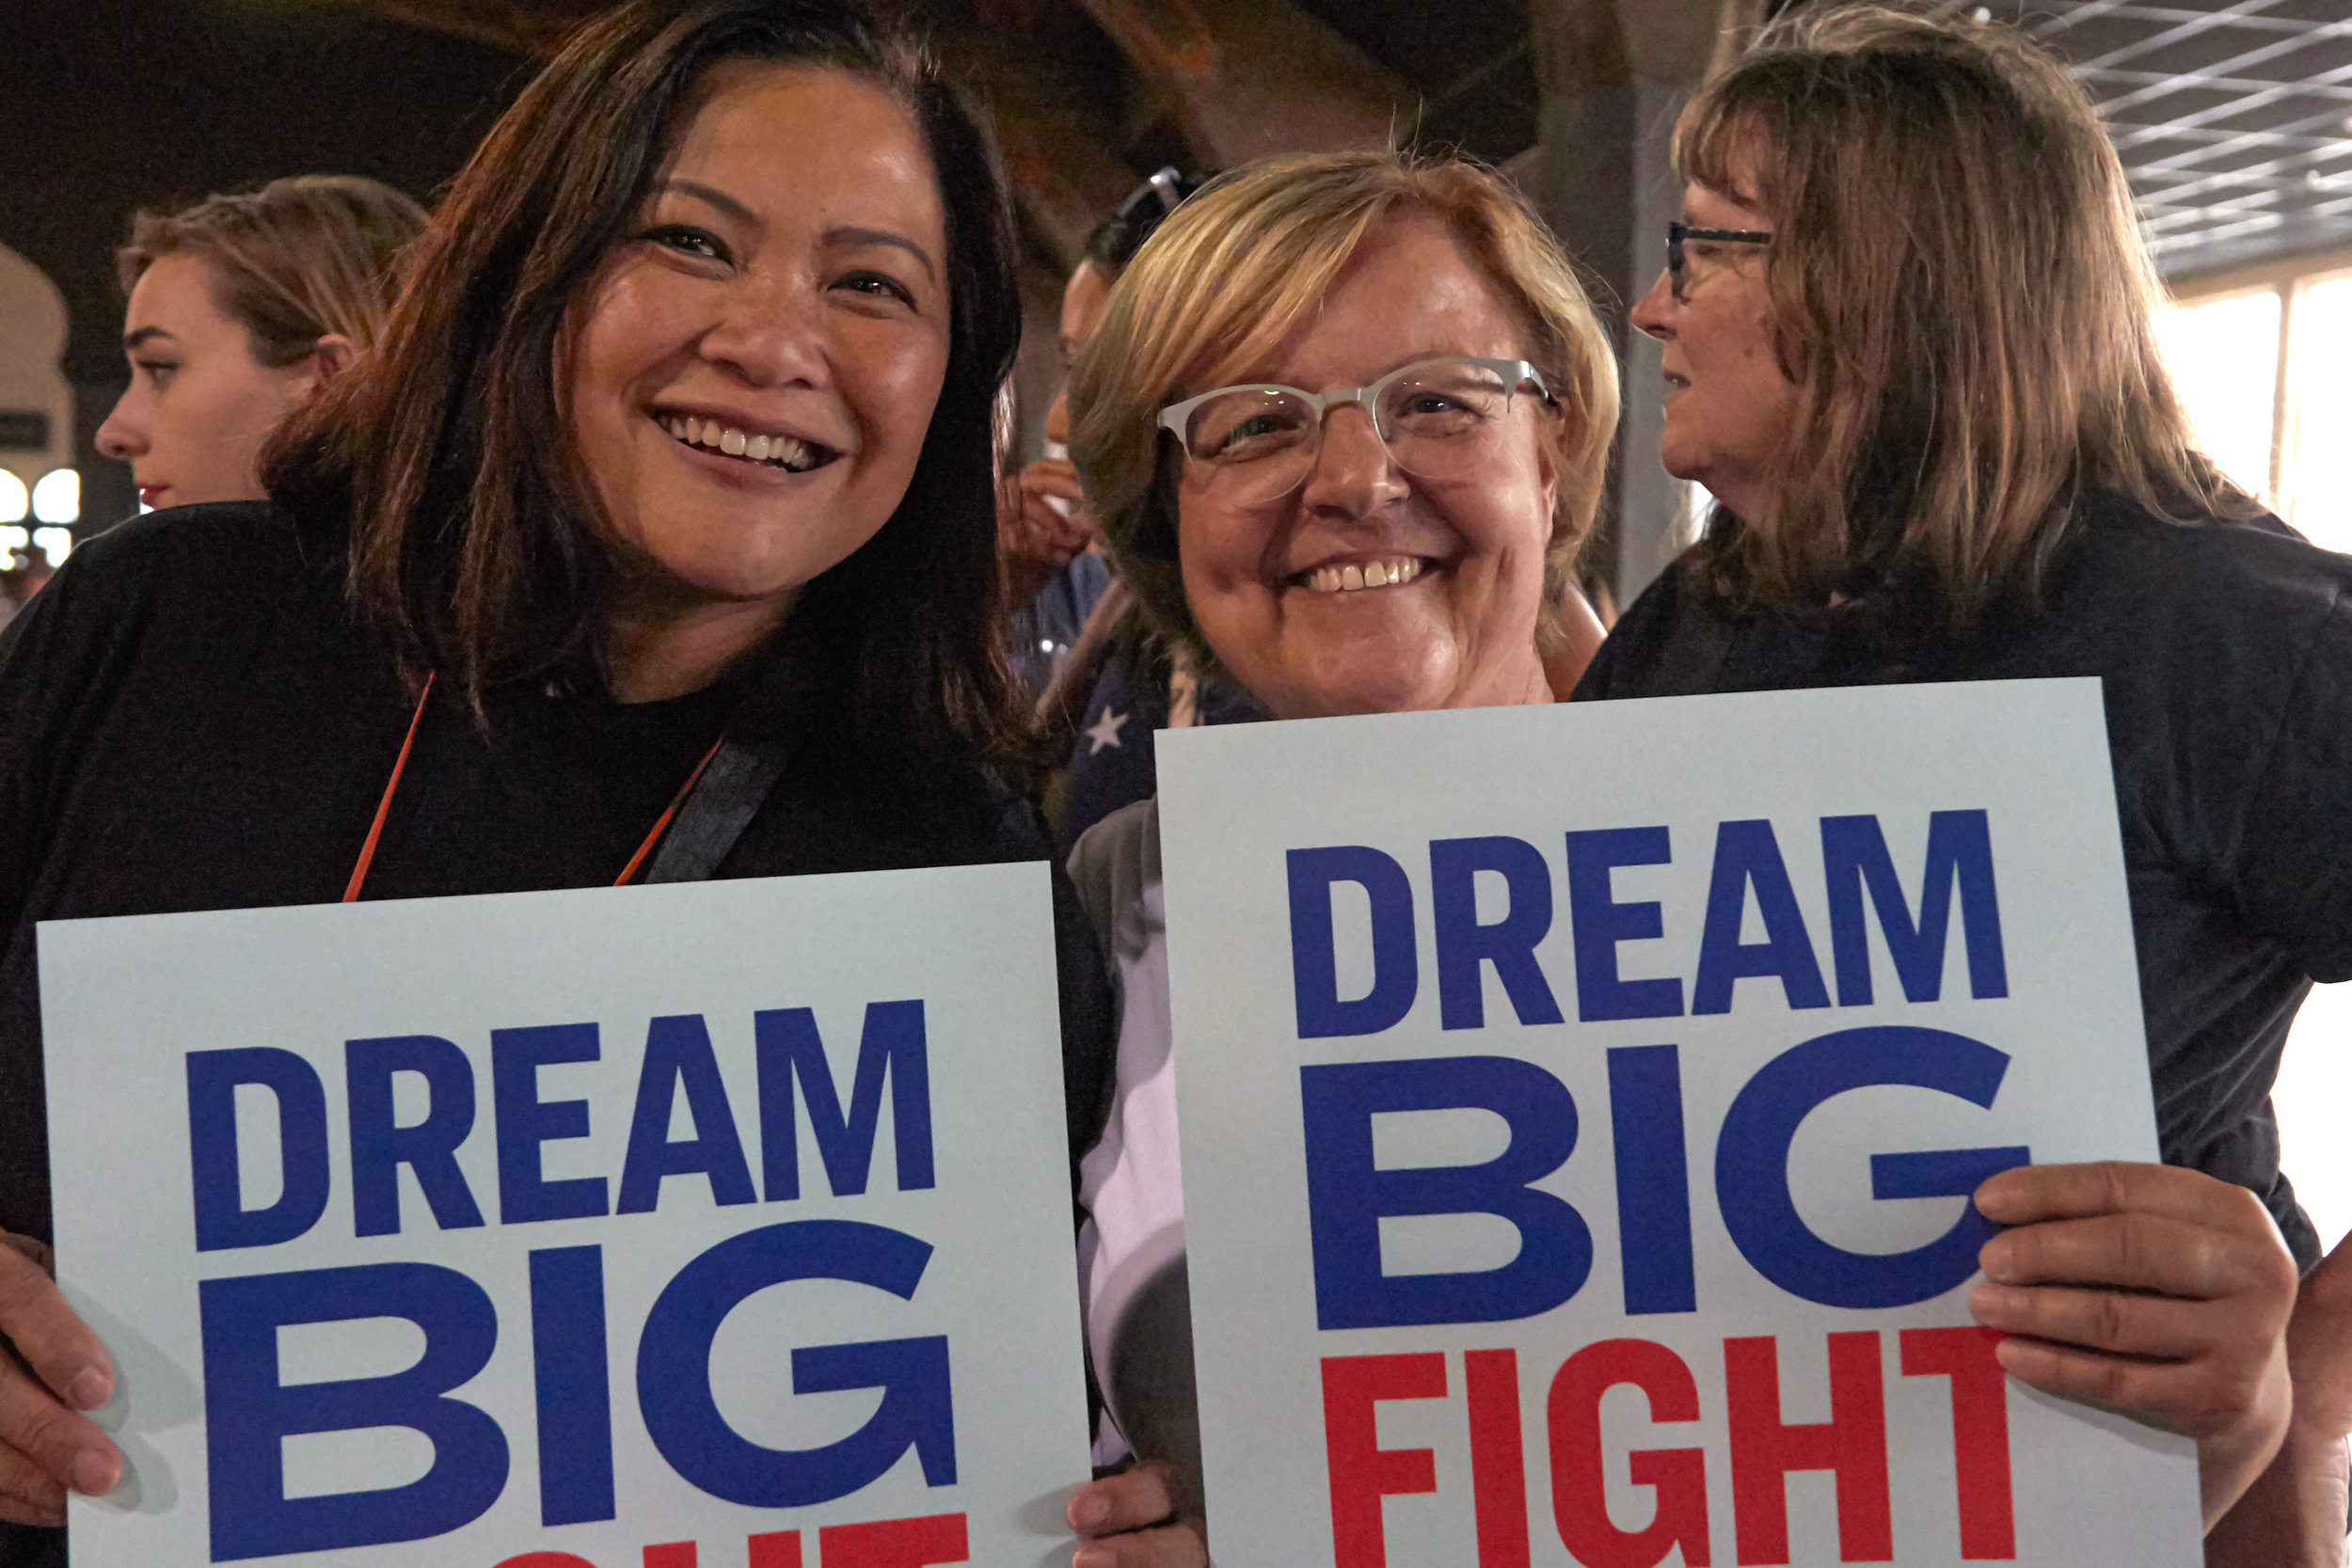 Mimi Roces (left), and Carolyn Casavan, of Long Beach, California, hold signs before a Town Hall event for Elizabeth Warren's presidential campaign, at the Shrine Expo Hall, Los Angeles, California, on August 21st 2019. (Marco Pallotti/The Corsair)